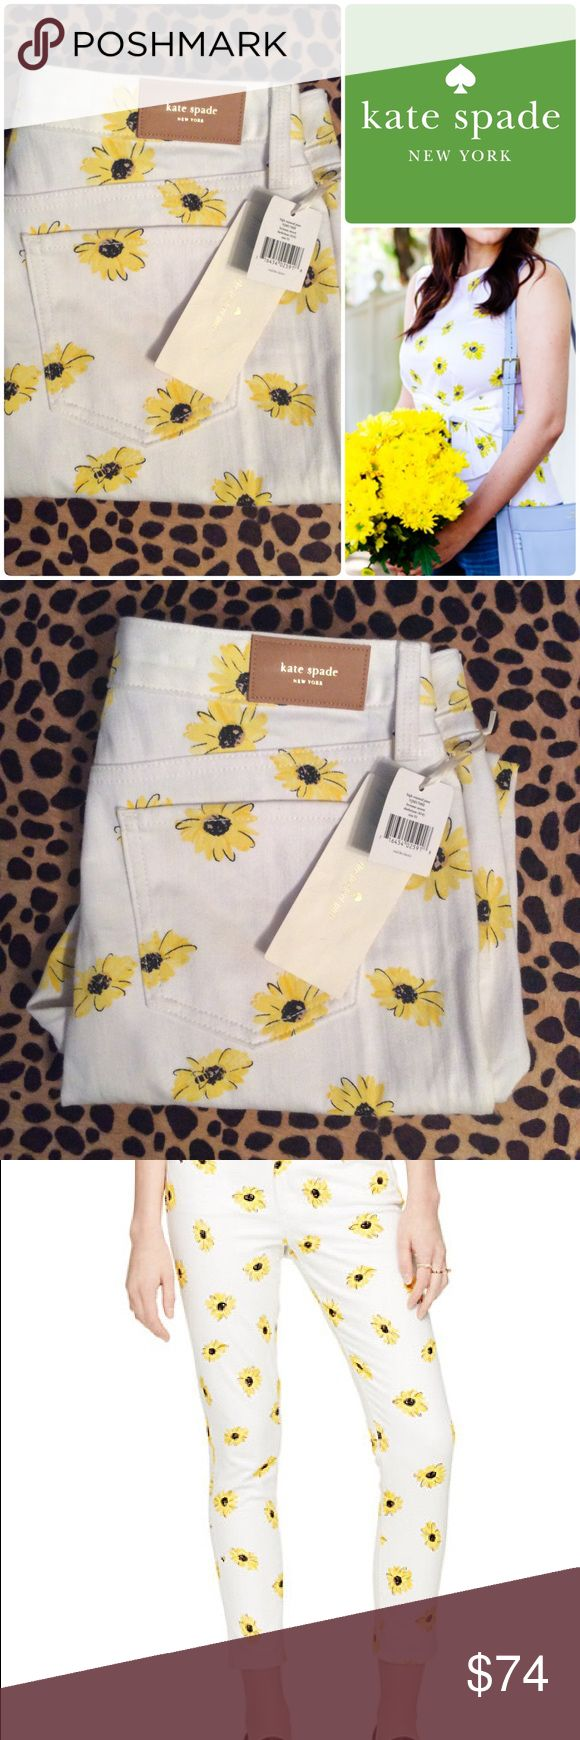 """Nwts KATE SPADE sz31"""" sunflower white JEANS💕 Super fun high waisted brand new KATE SPADE sunflower white jeans size 31.   Tags still attached. kate spade Jeans"""